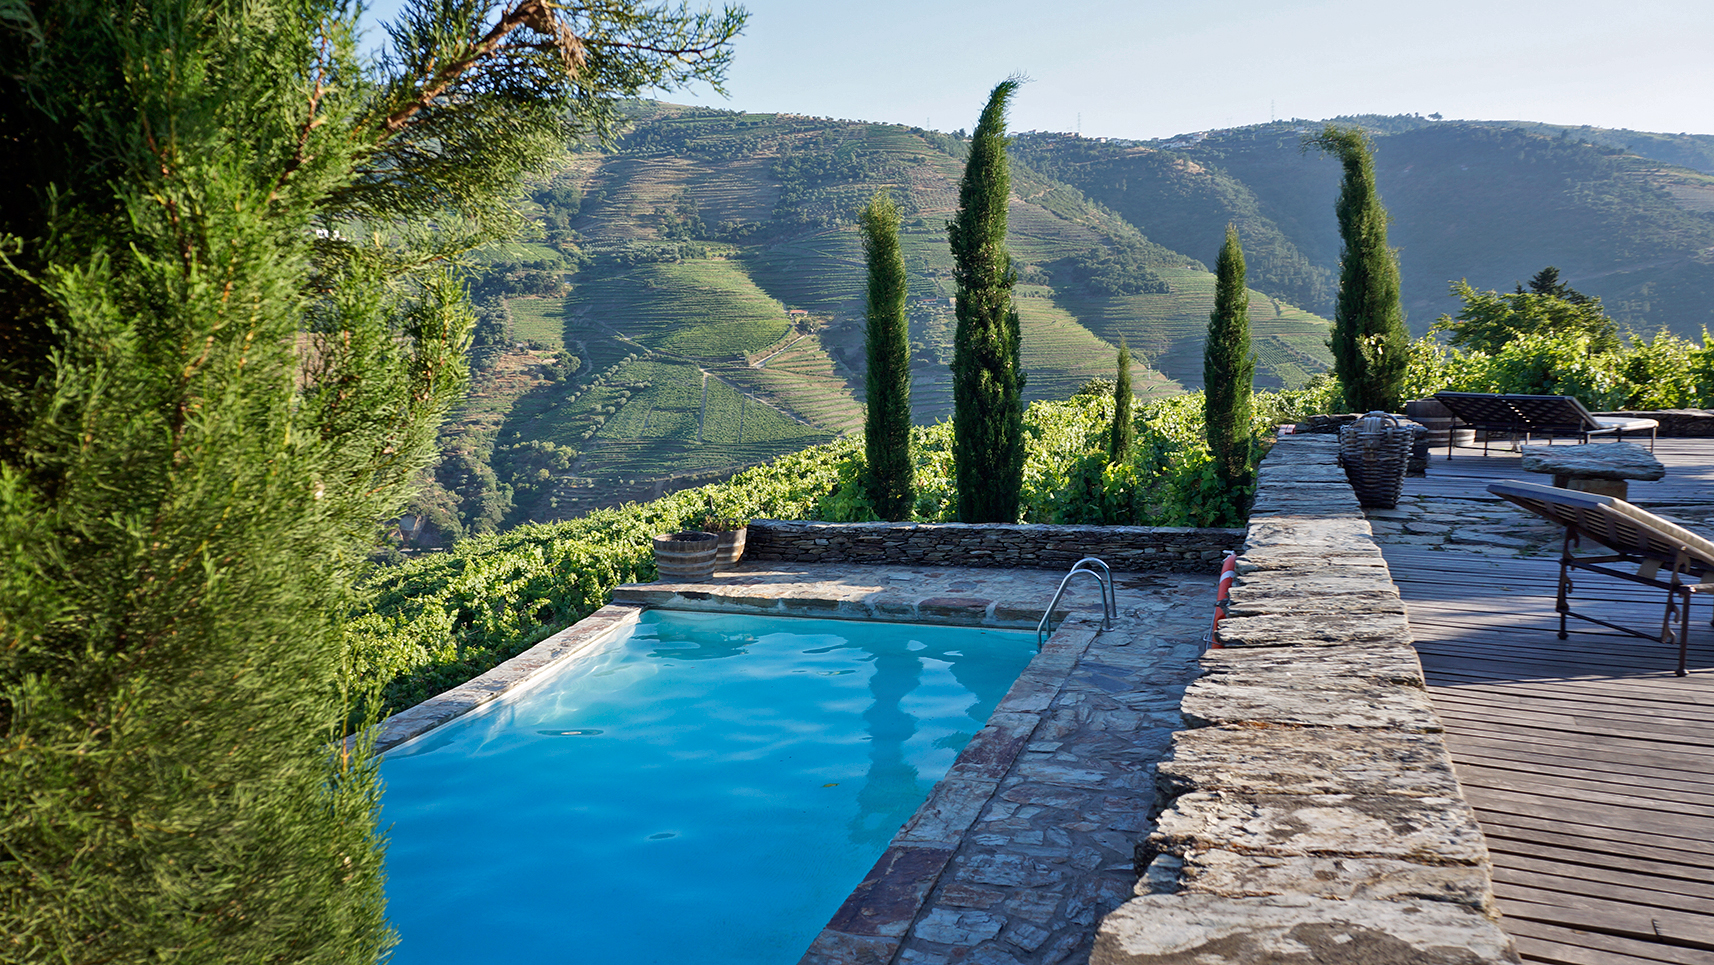 quinta-nova-vineyard-douro-valley-guimaraes-portugal-7